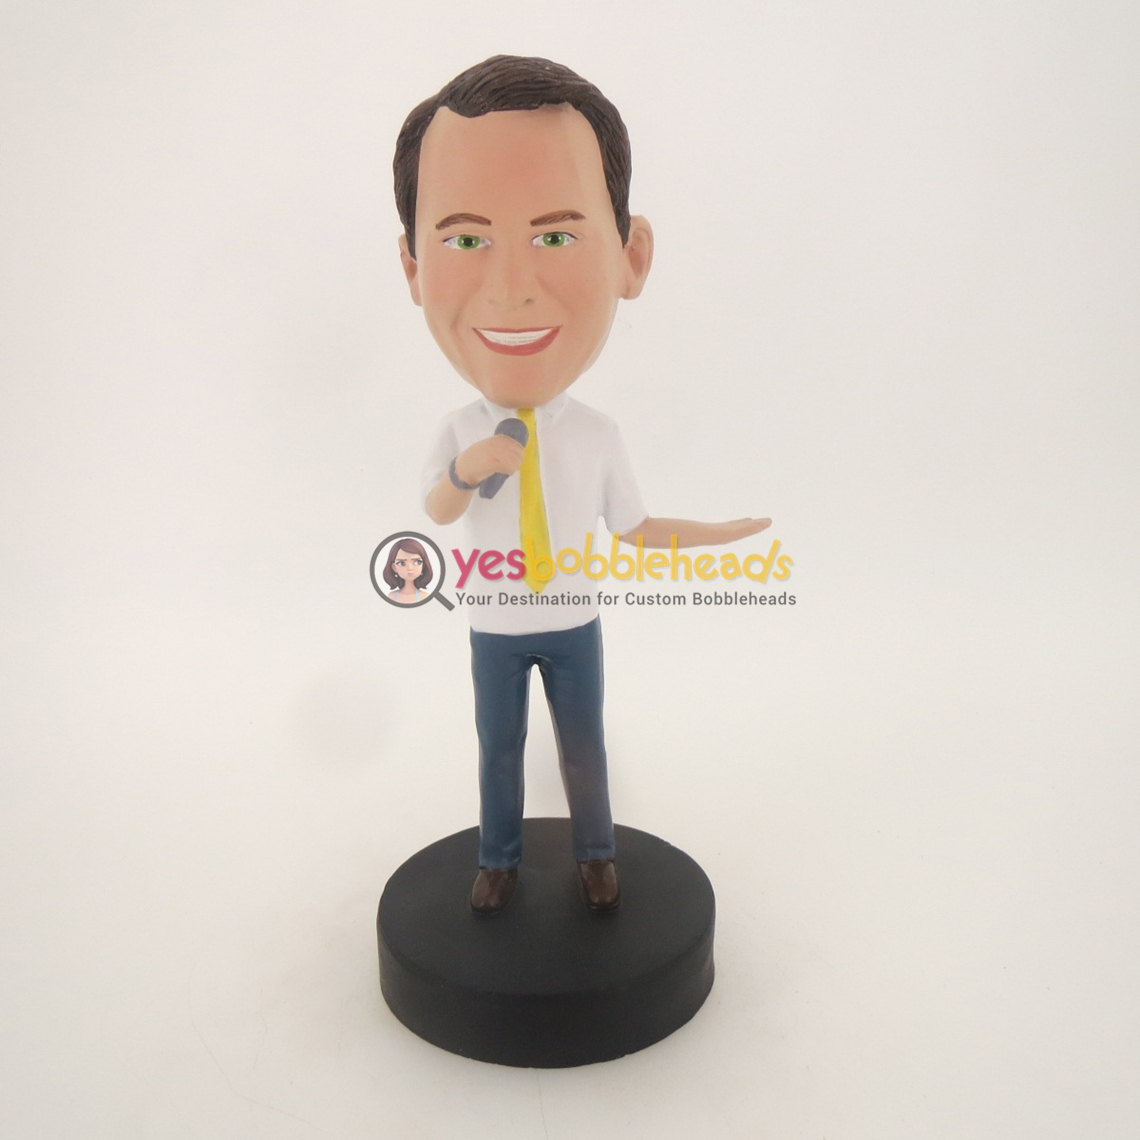 Picture of Custom Bobblehead Doll: Man Having Speech